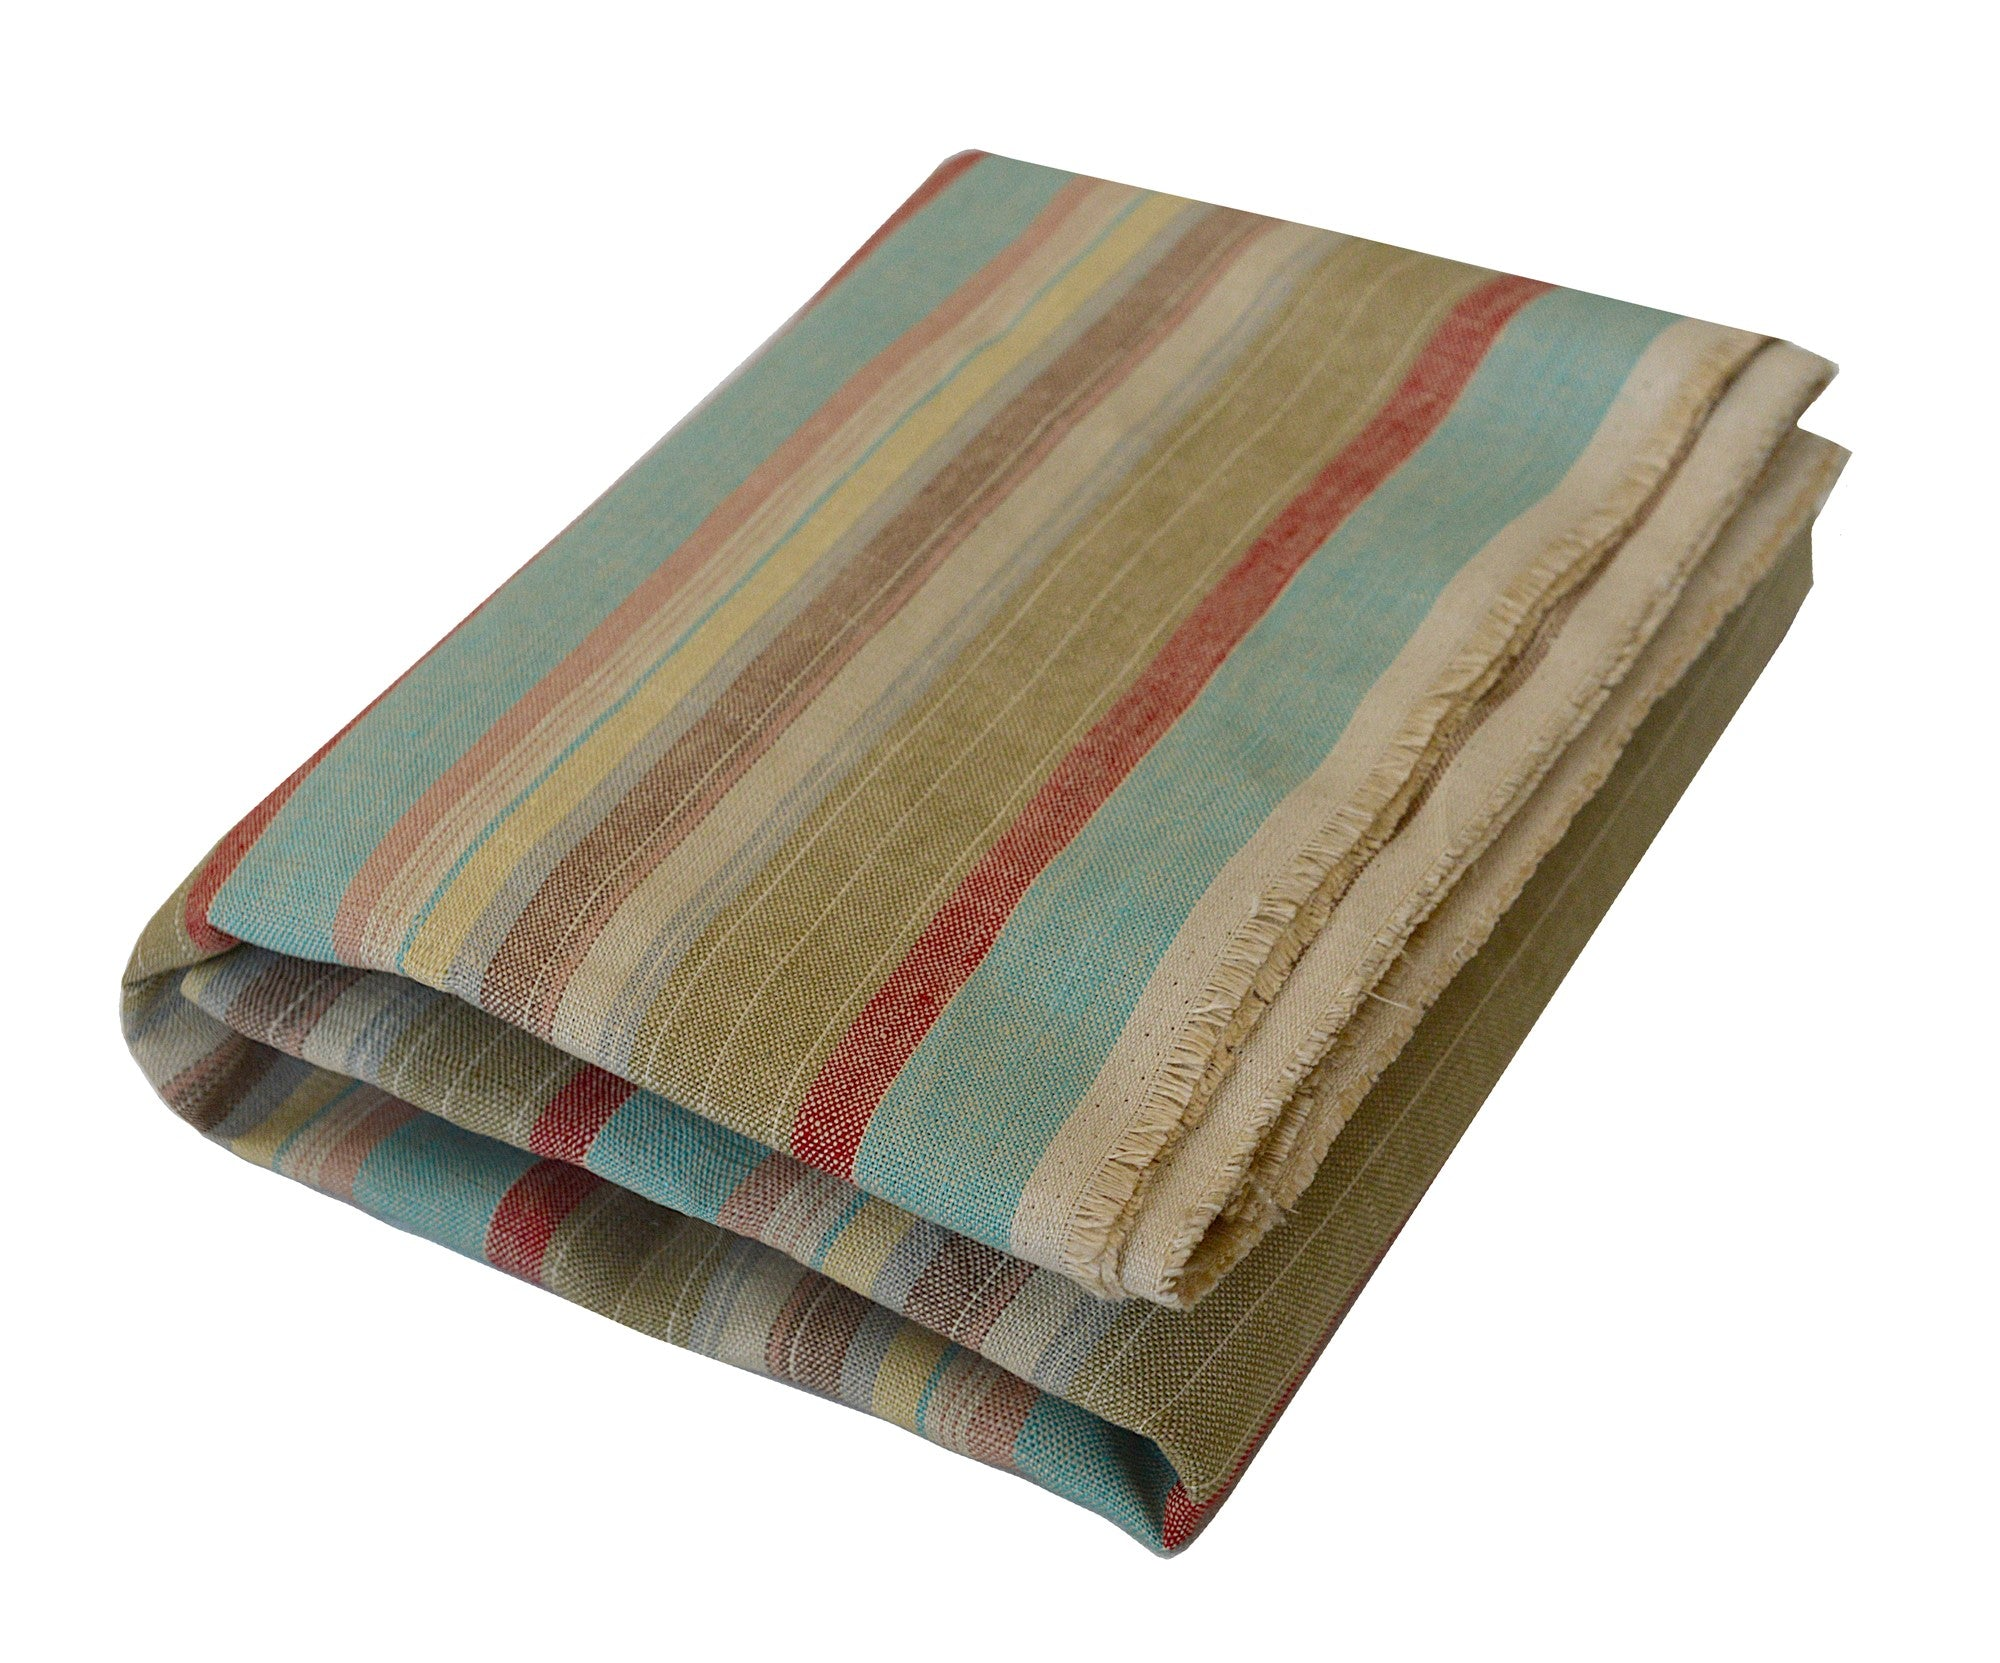 Linus; Brown,Tan, Red, Mint Green and Red Linen Beach Towel - Deck Towel